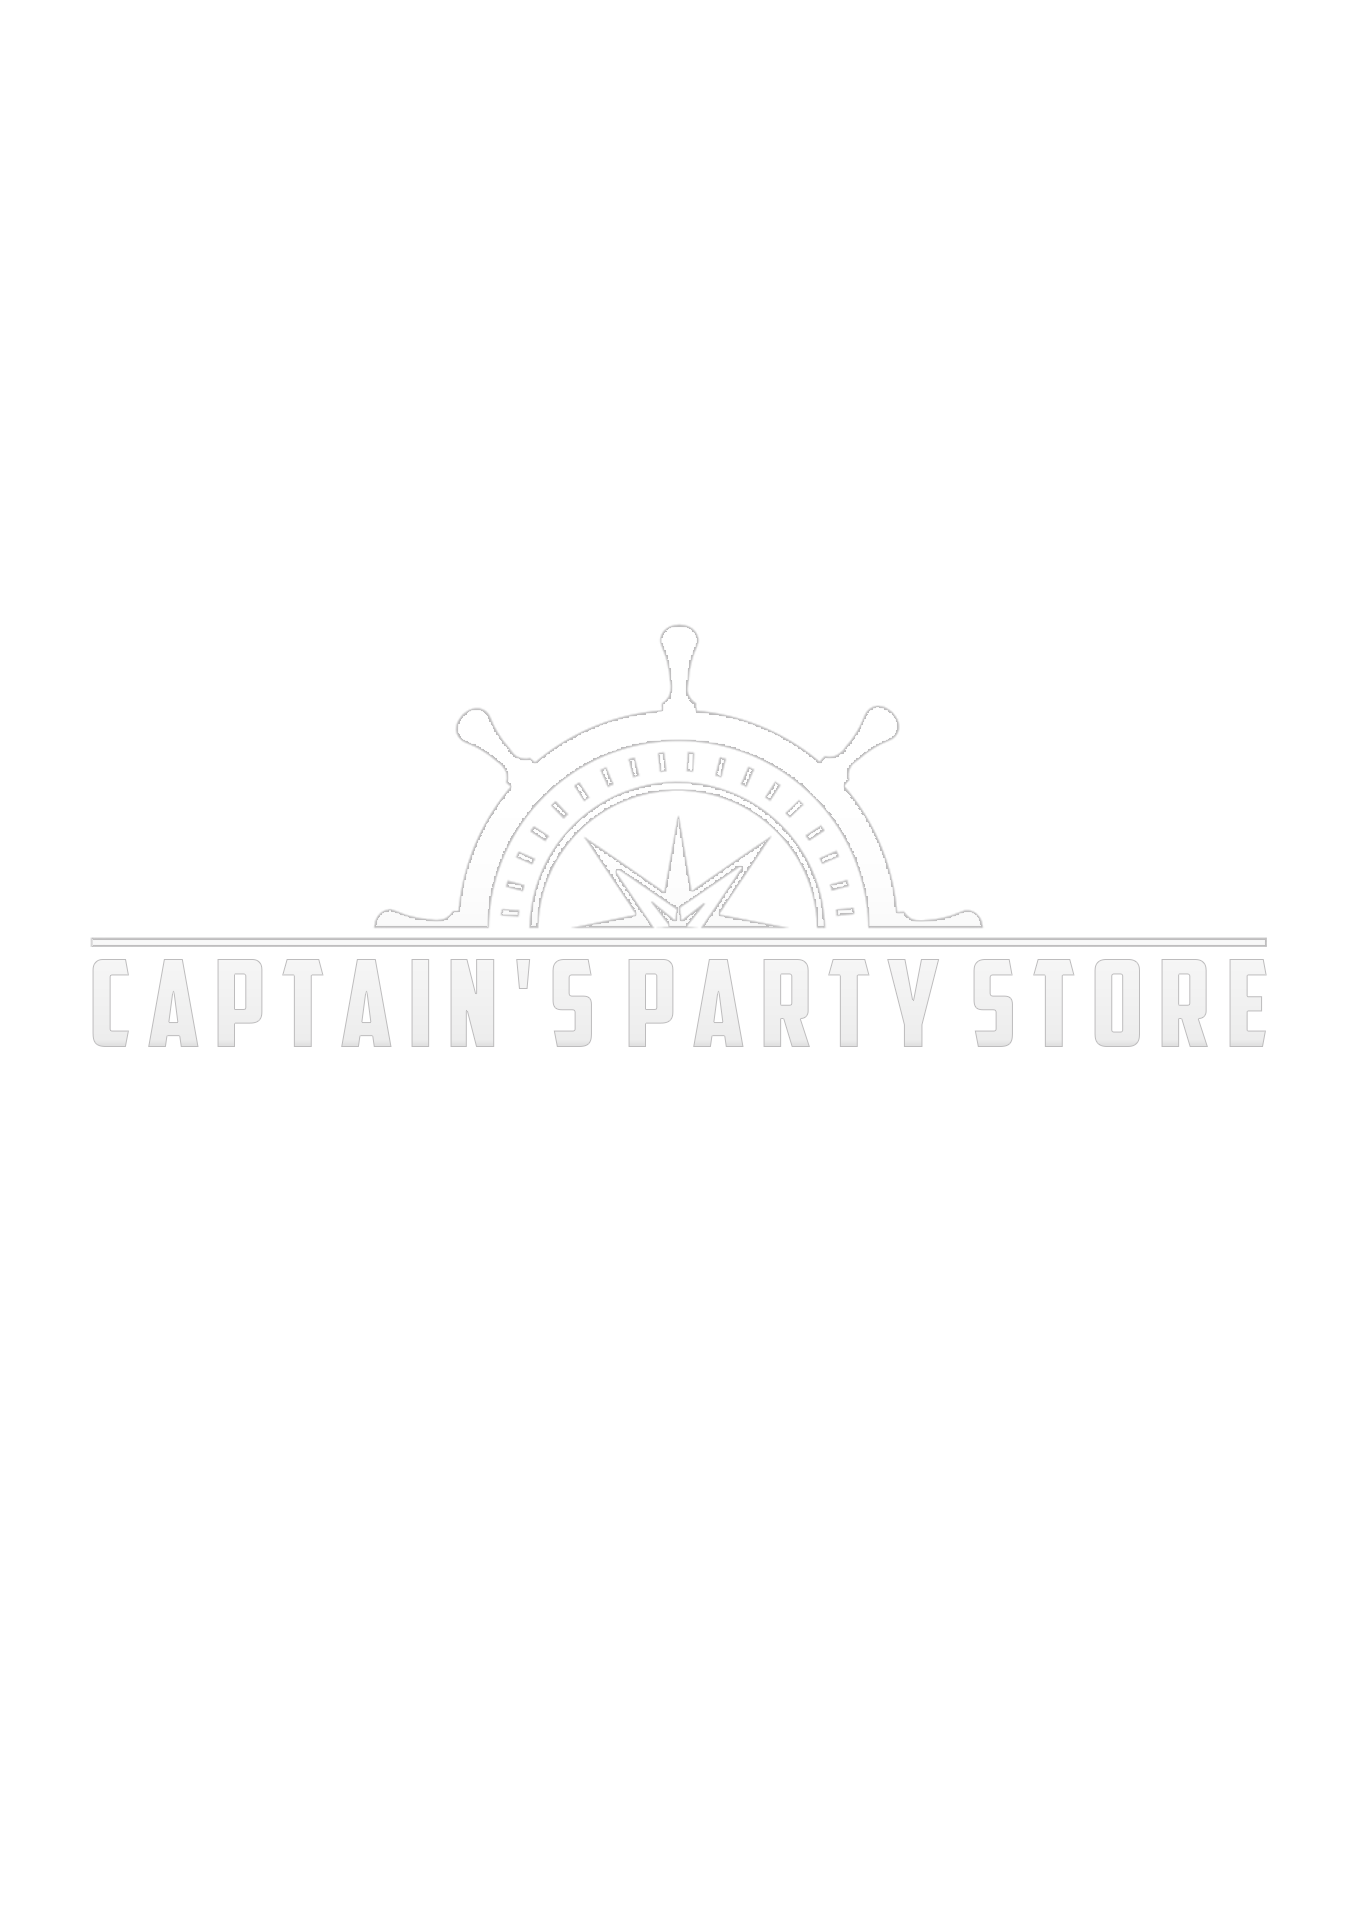 Captain's Party Store